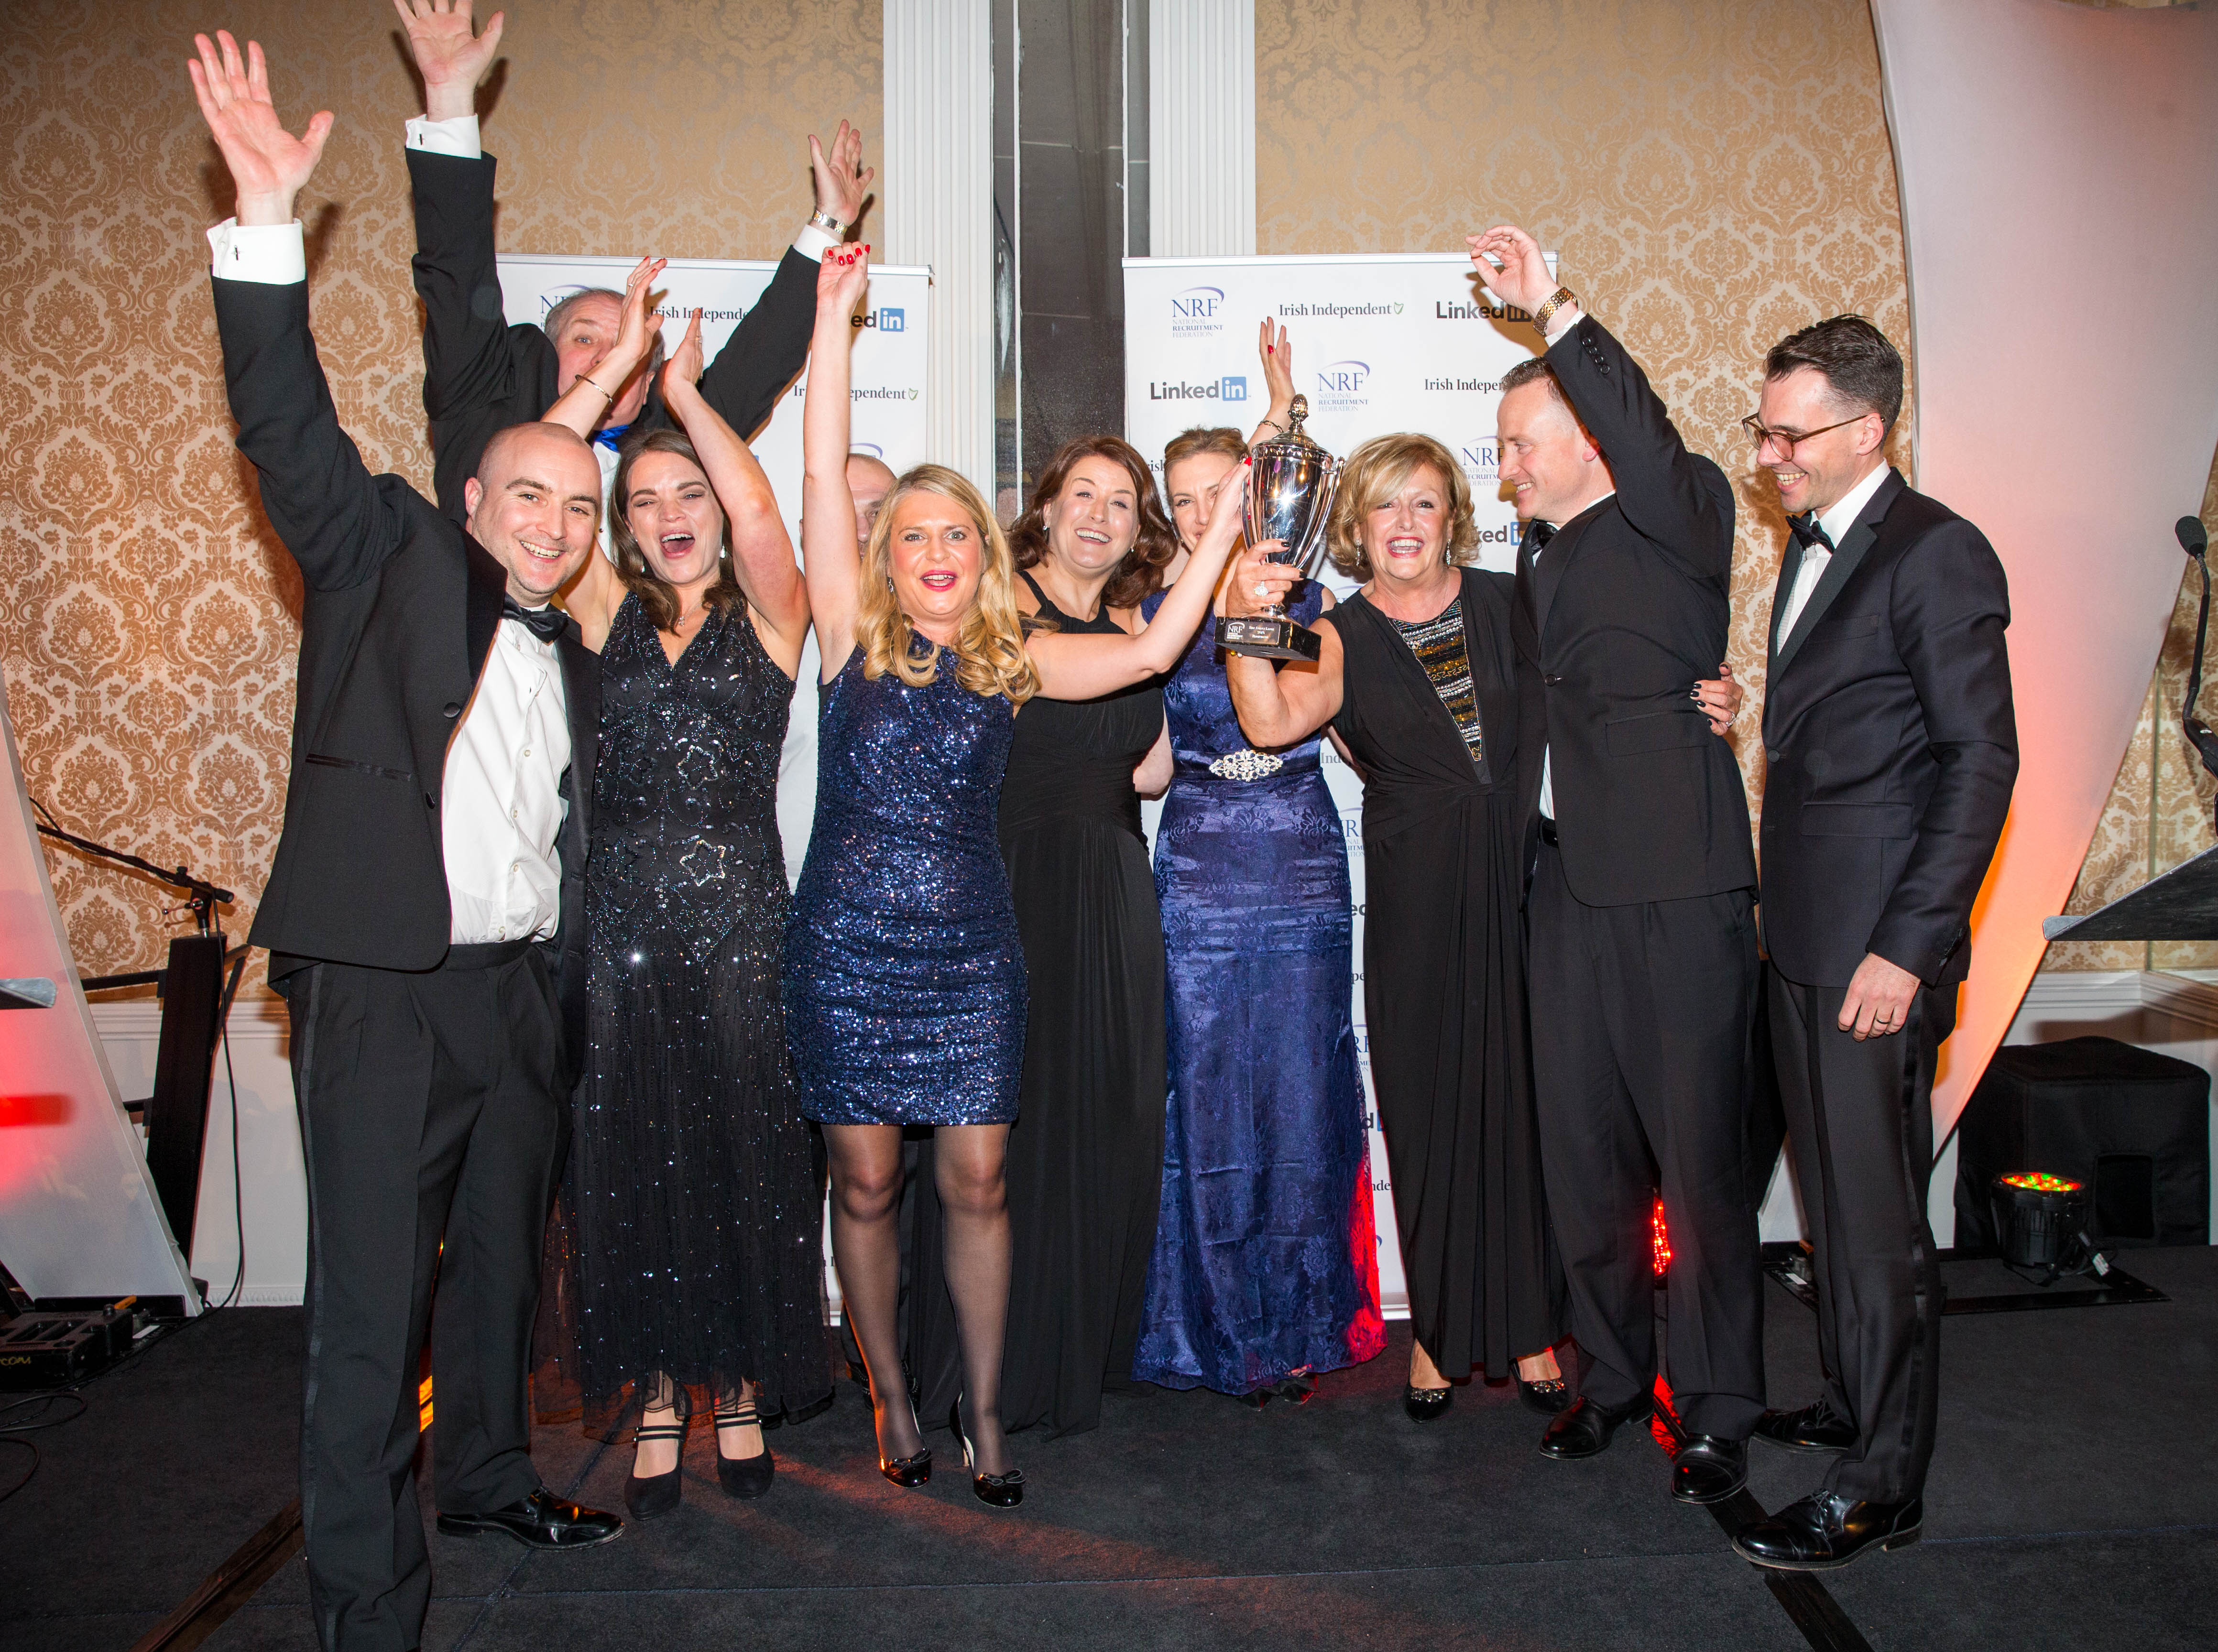 Winners of Agency of the year (Large) Brightwater with Sponsor (far right) James Payne from Bond Adapt